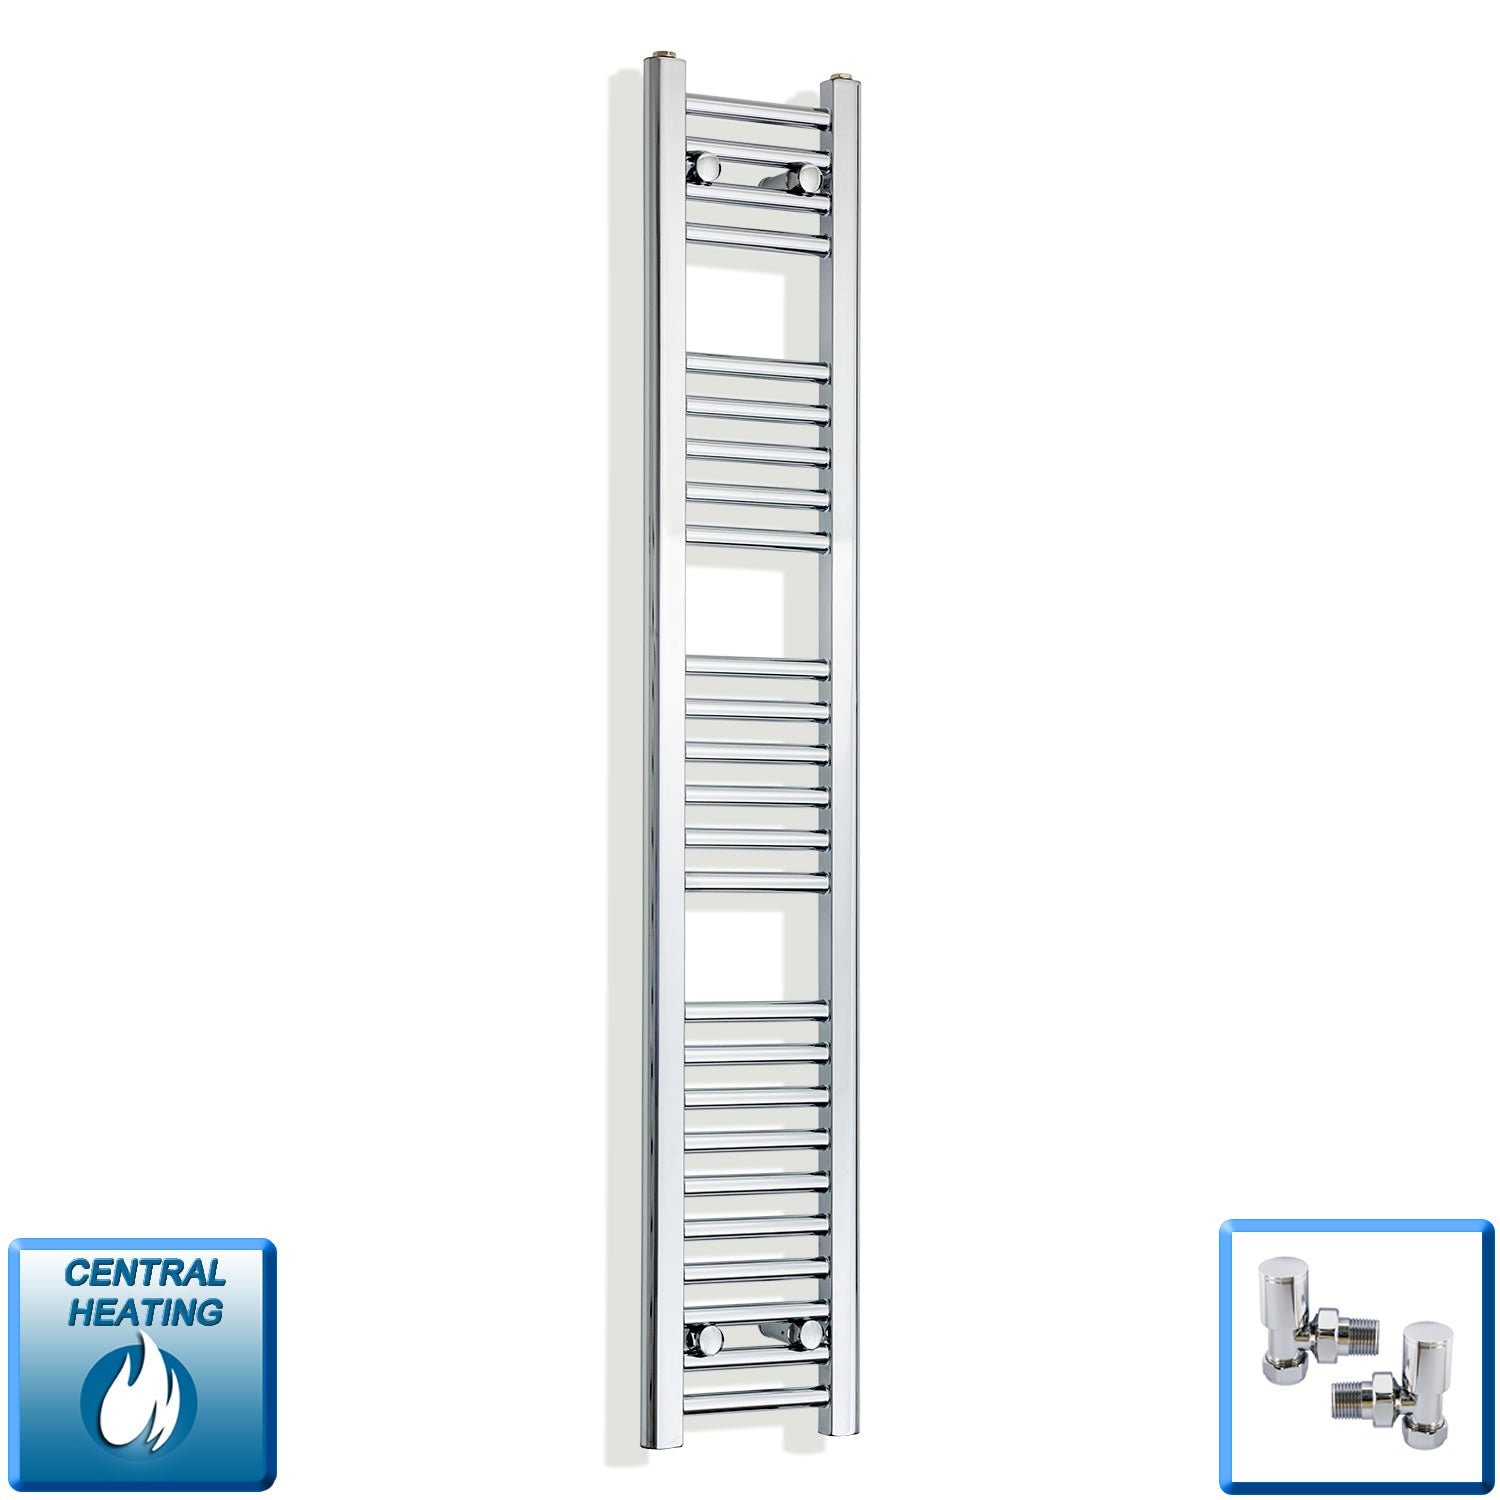 250mm Wide 1400mm High Flat Chrome Heated Towel Rail Radiator,With Angled Valve